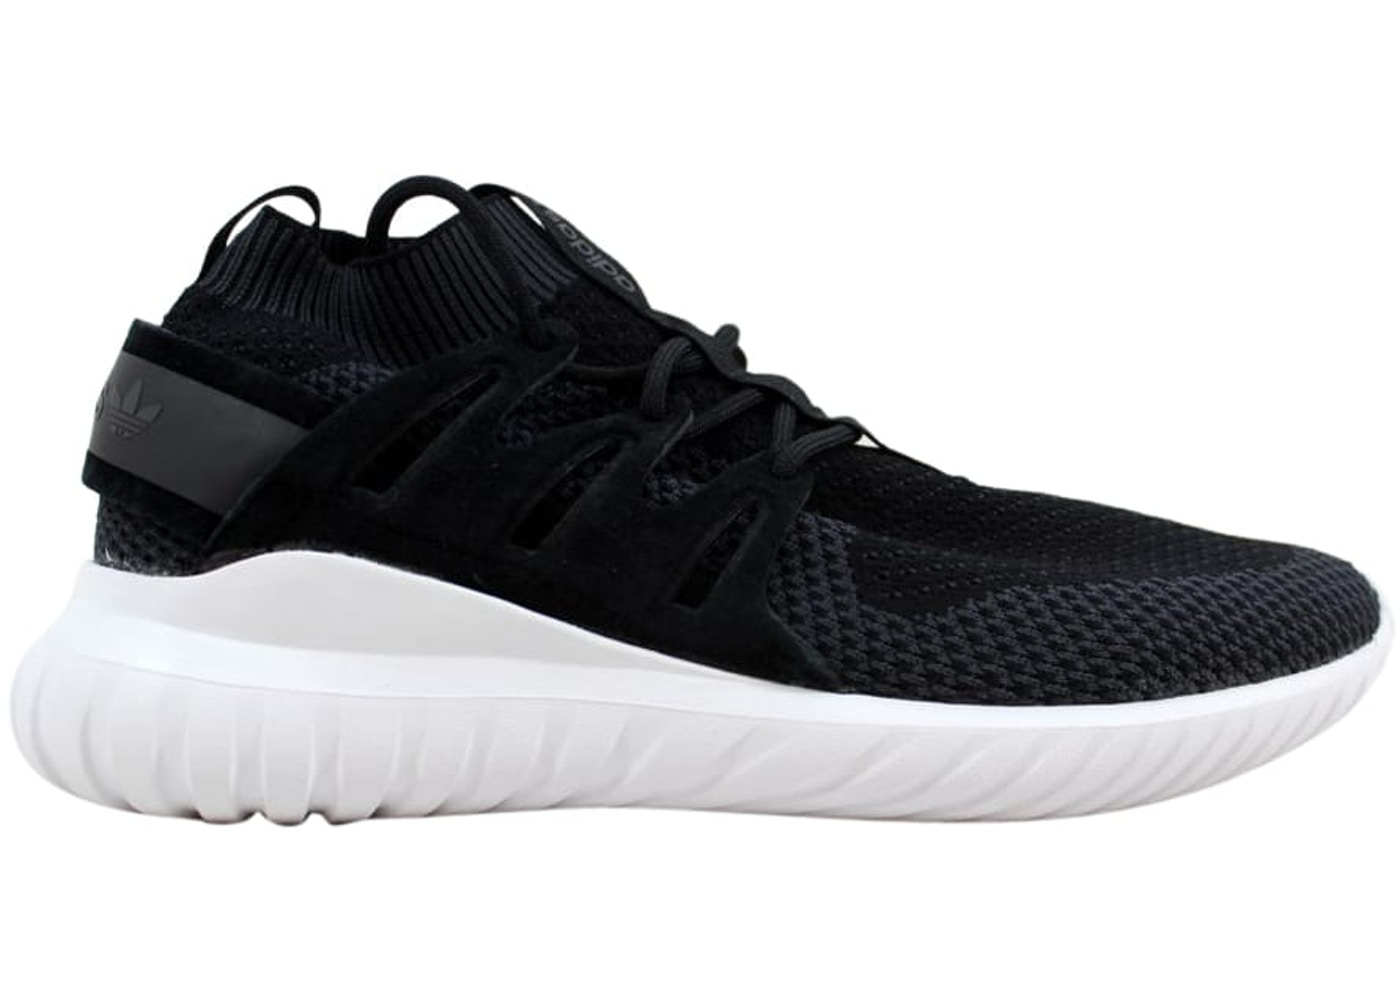 factory authentic 87c6f 1f21e adidas Tubular Nova PK Black